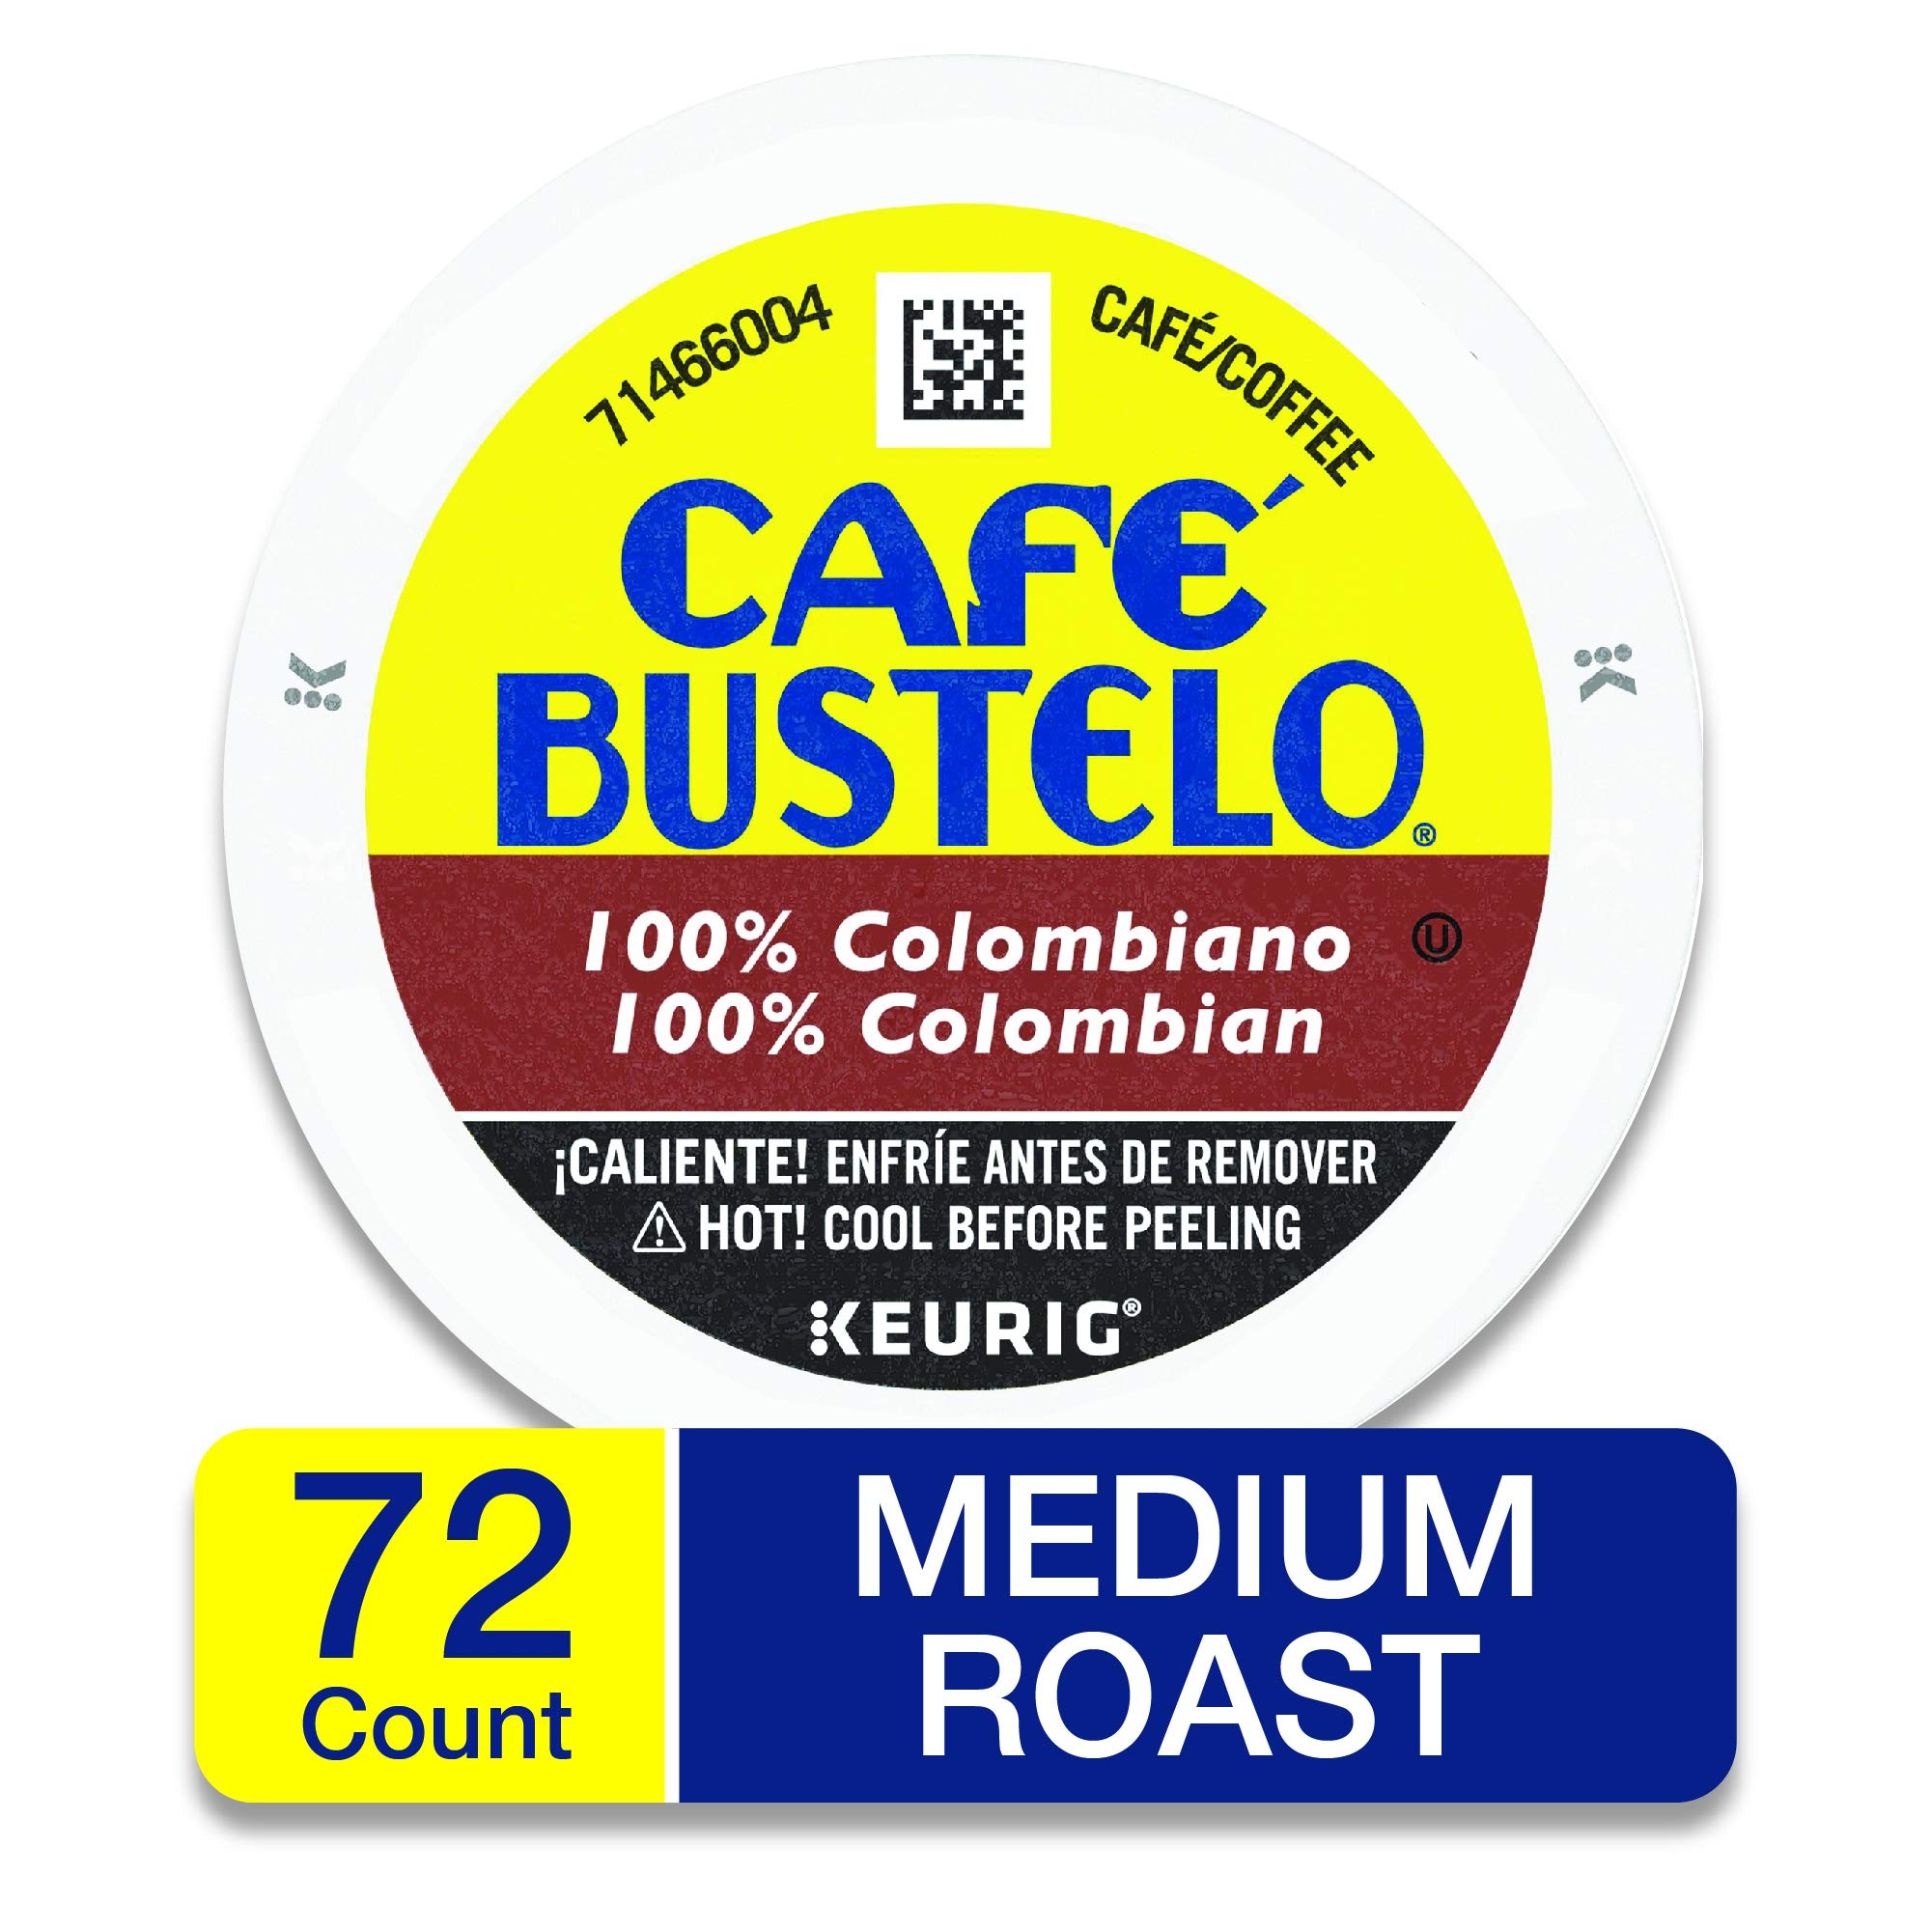 Café Bustelo 100% Colombian Medium Roast Coffee, 72 K Cups for Keurig Makers by Café Bustelo